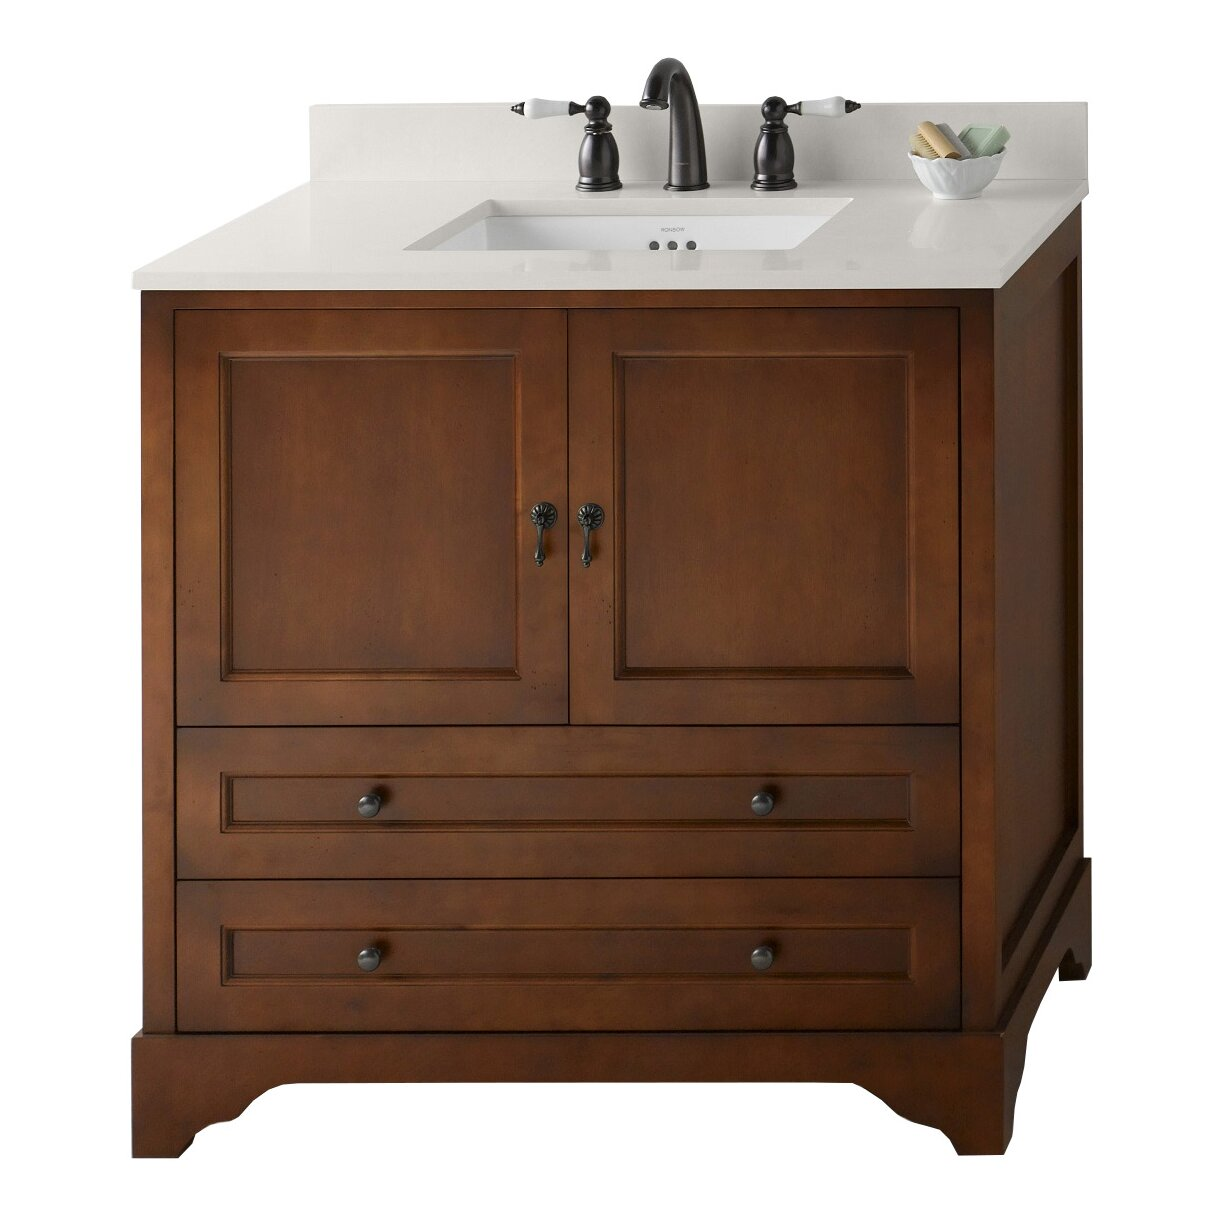 bathroom vanity sets ronbow 36 quot single bathroom vanity set wayfair 716